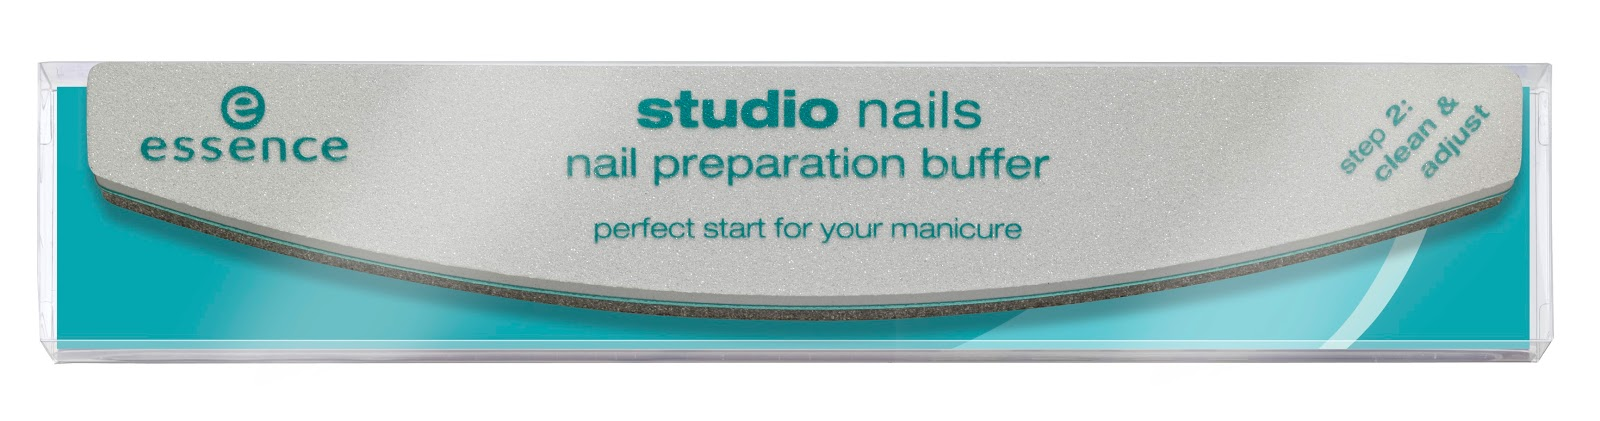 Essence studio nails nail preparation buffer